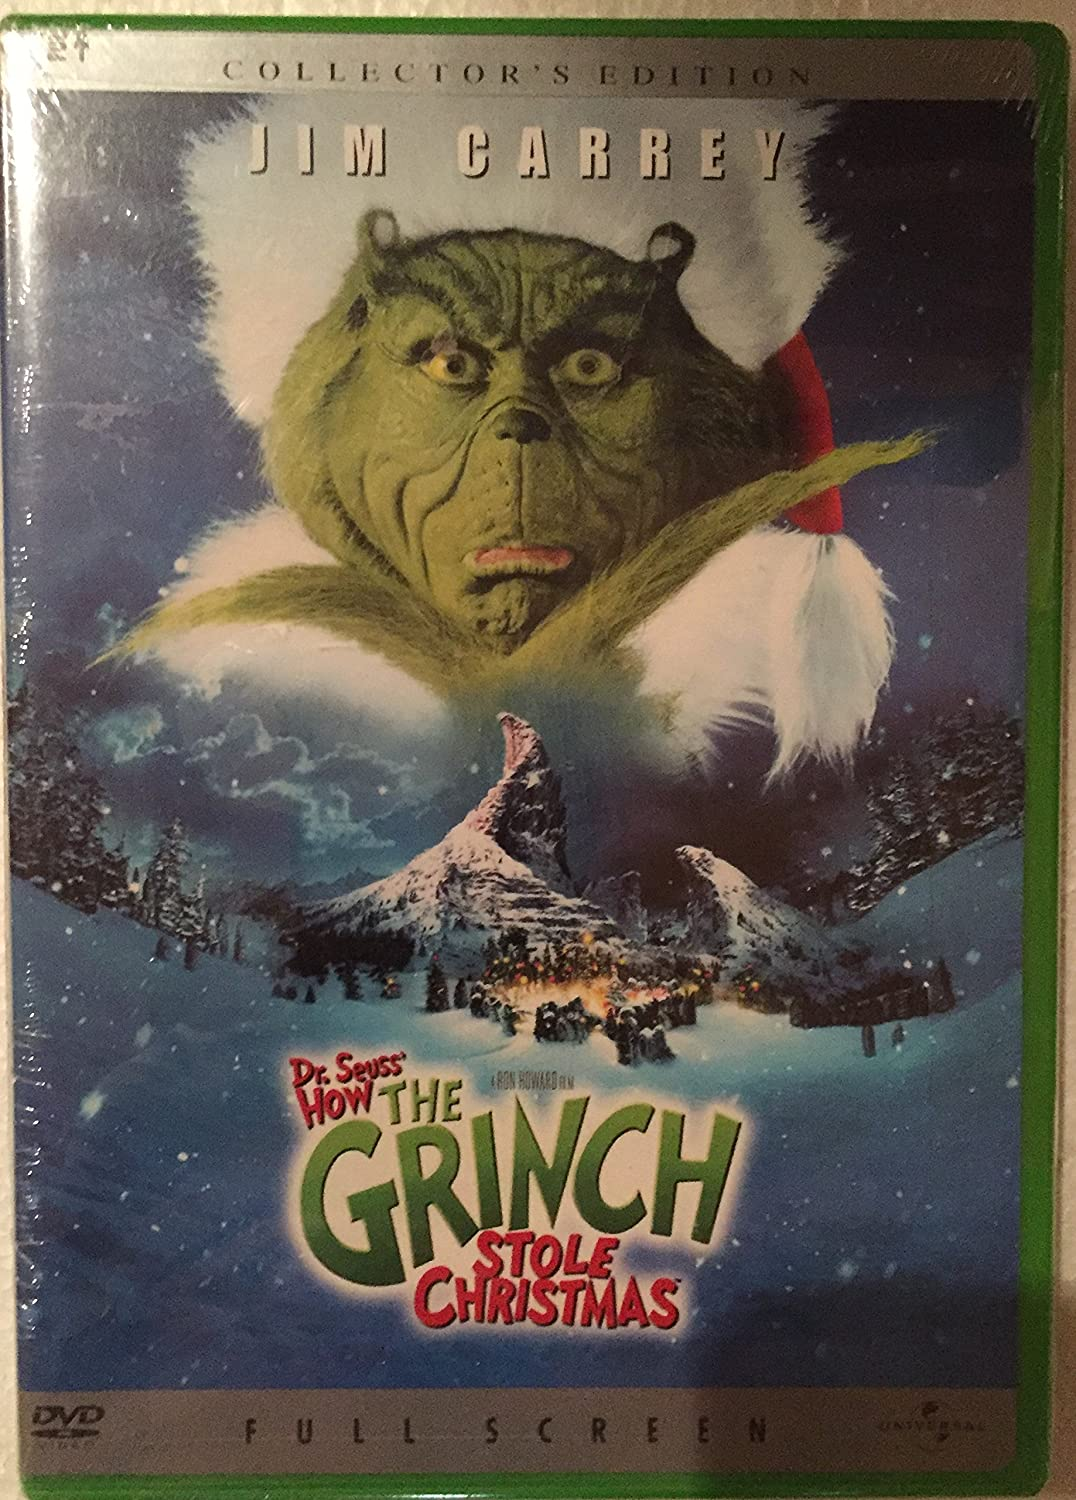 amazoncom dr seuss how the grinch stole christmas collectors full screen edition jim carrey ron howard jeffery tambor anthony hopkins - How The Grinch Stole Christmas 2014